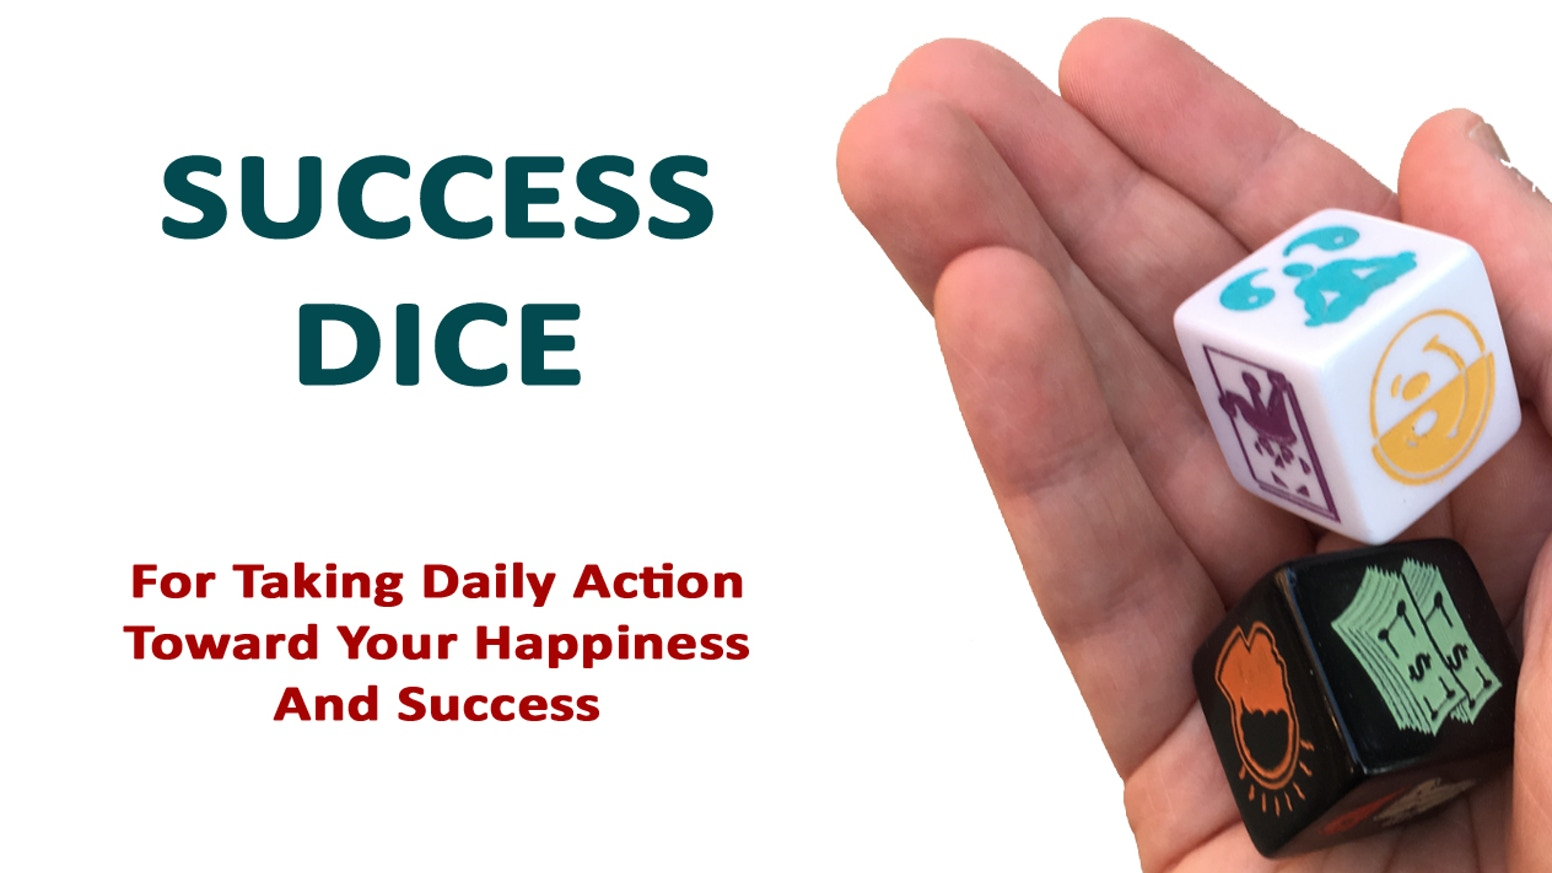 By Popular Demand! The Once-a-Day Decision Tool For Keeping Your Life on Track ...And Taking Action Toward Your Happiness and Success!